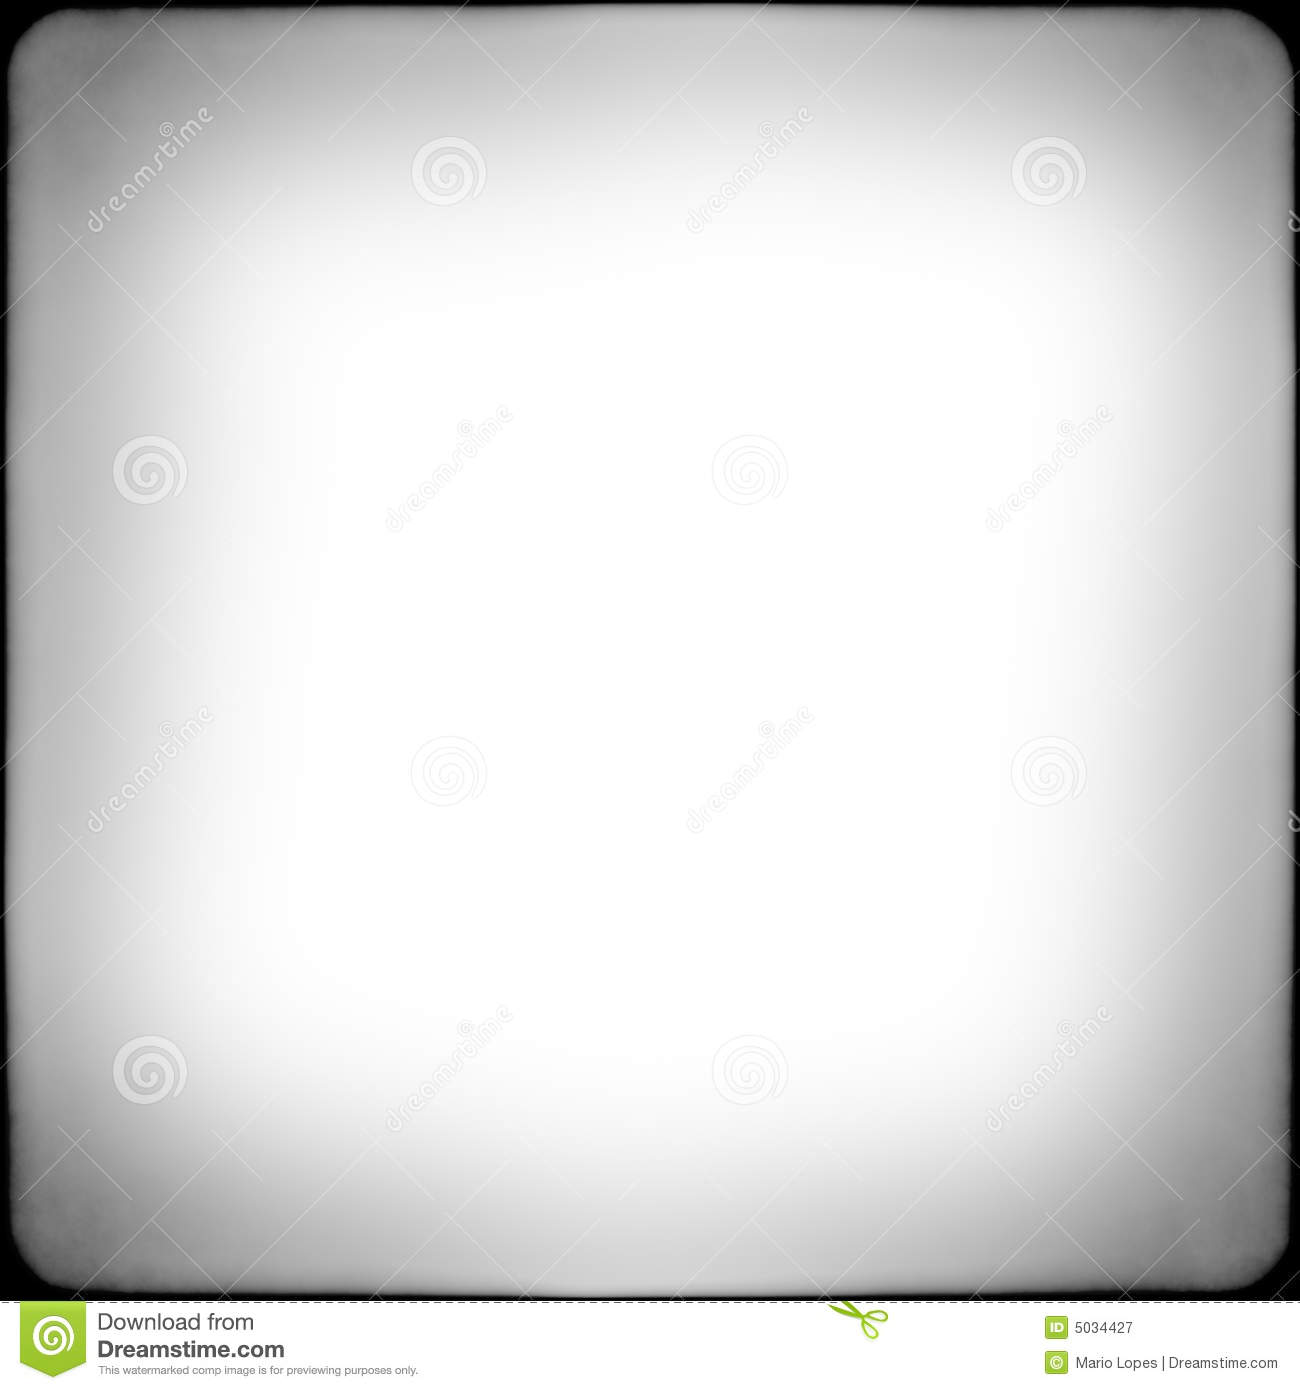 Black And White Square Frame Royalty Free Stock Photography   Image